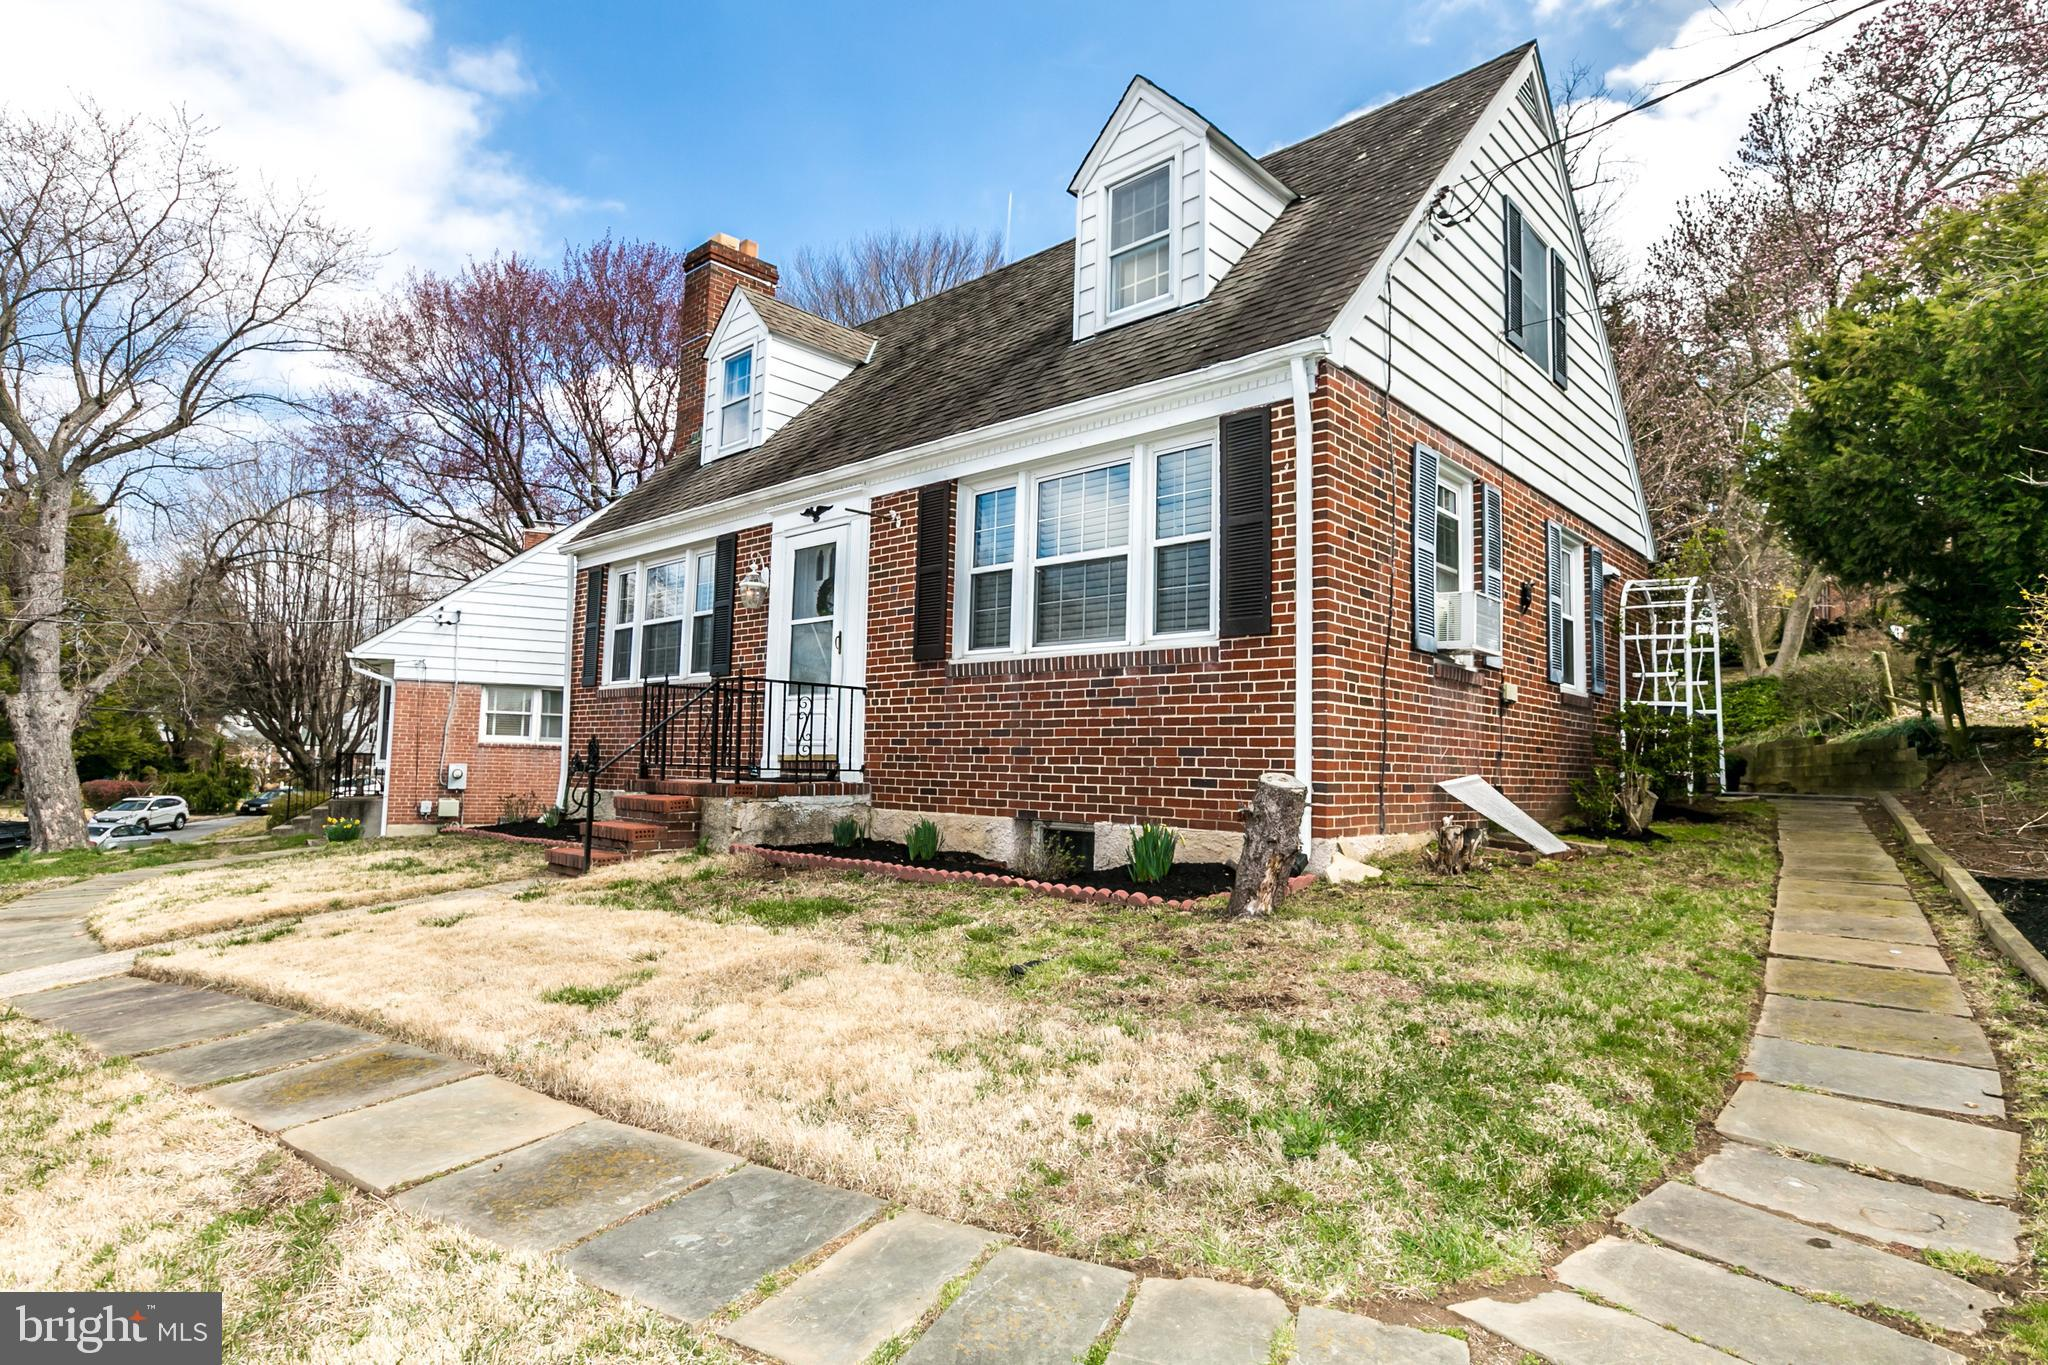 6648 LOCH HILL ROAD, BALTIMORE, MD 21239